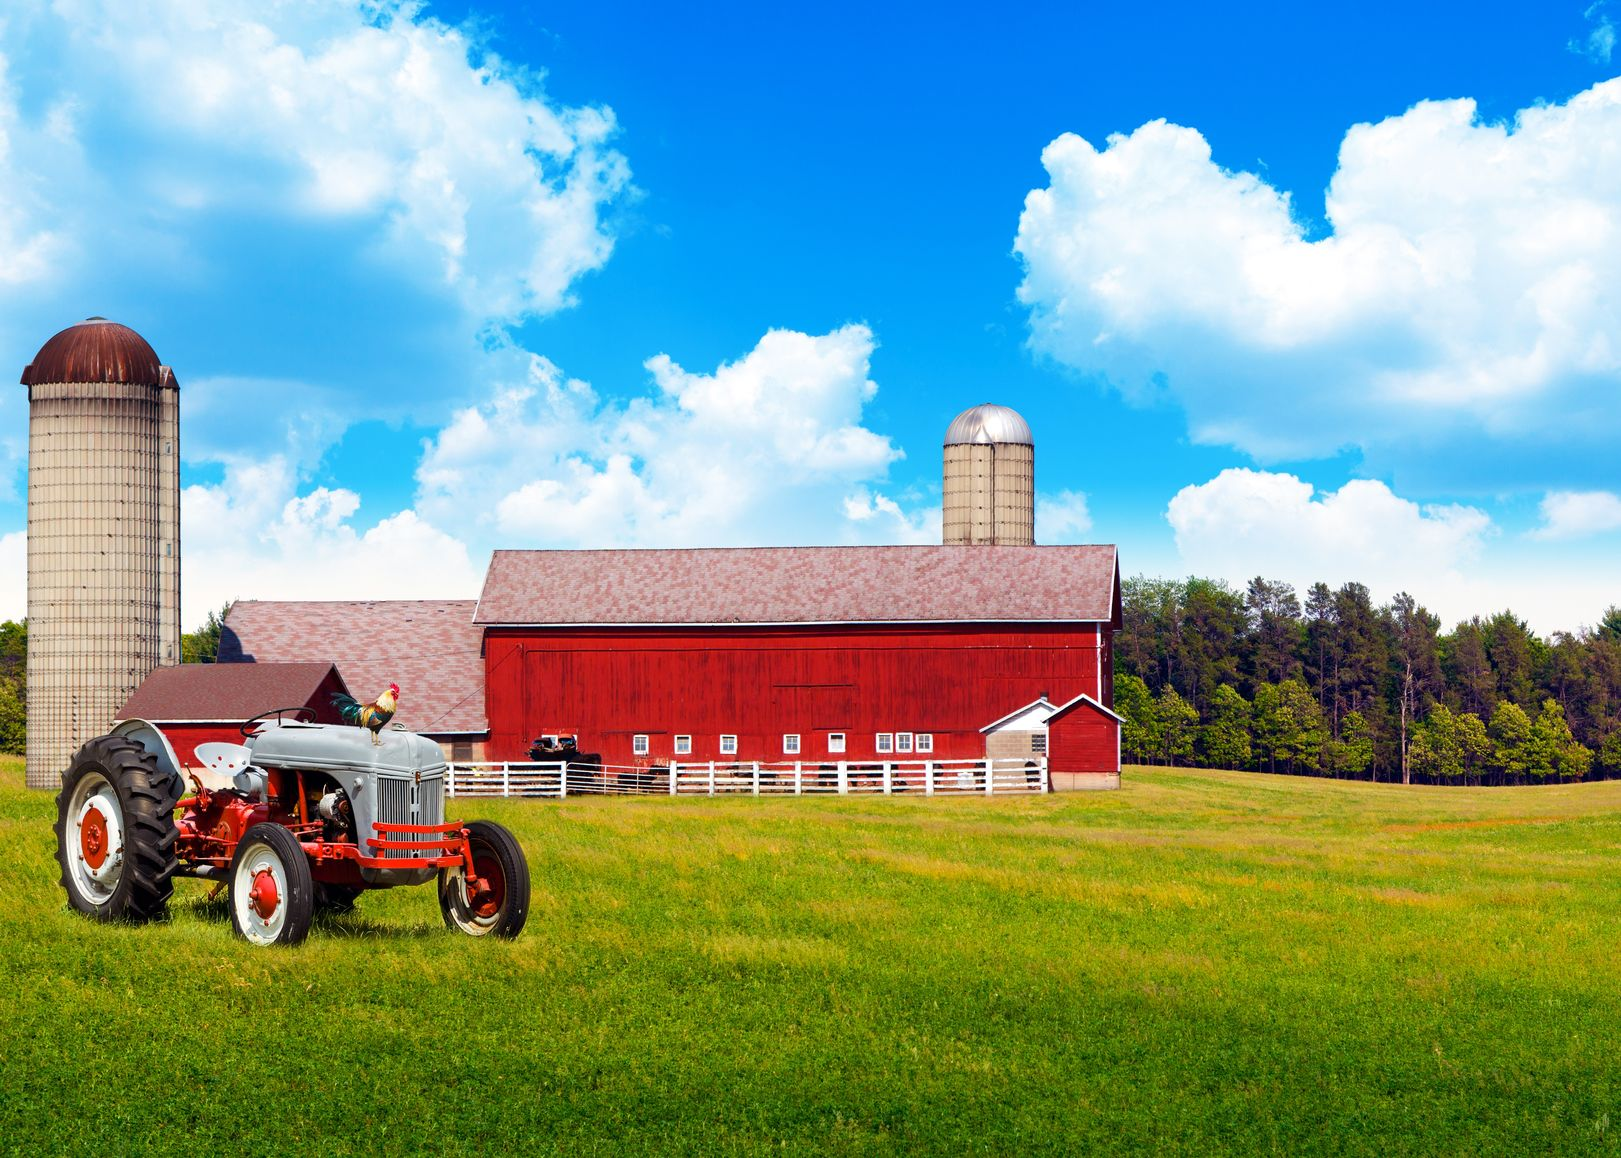 Orange County, CA. Farm & Ranch Insurance